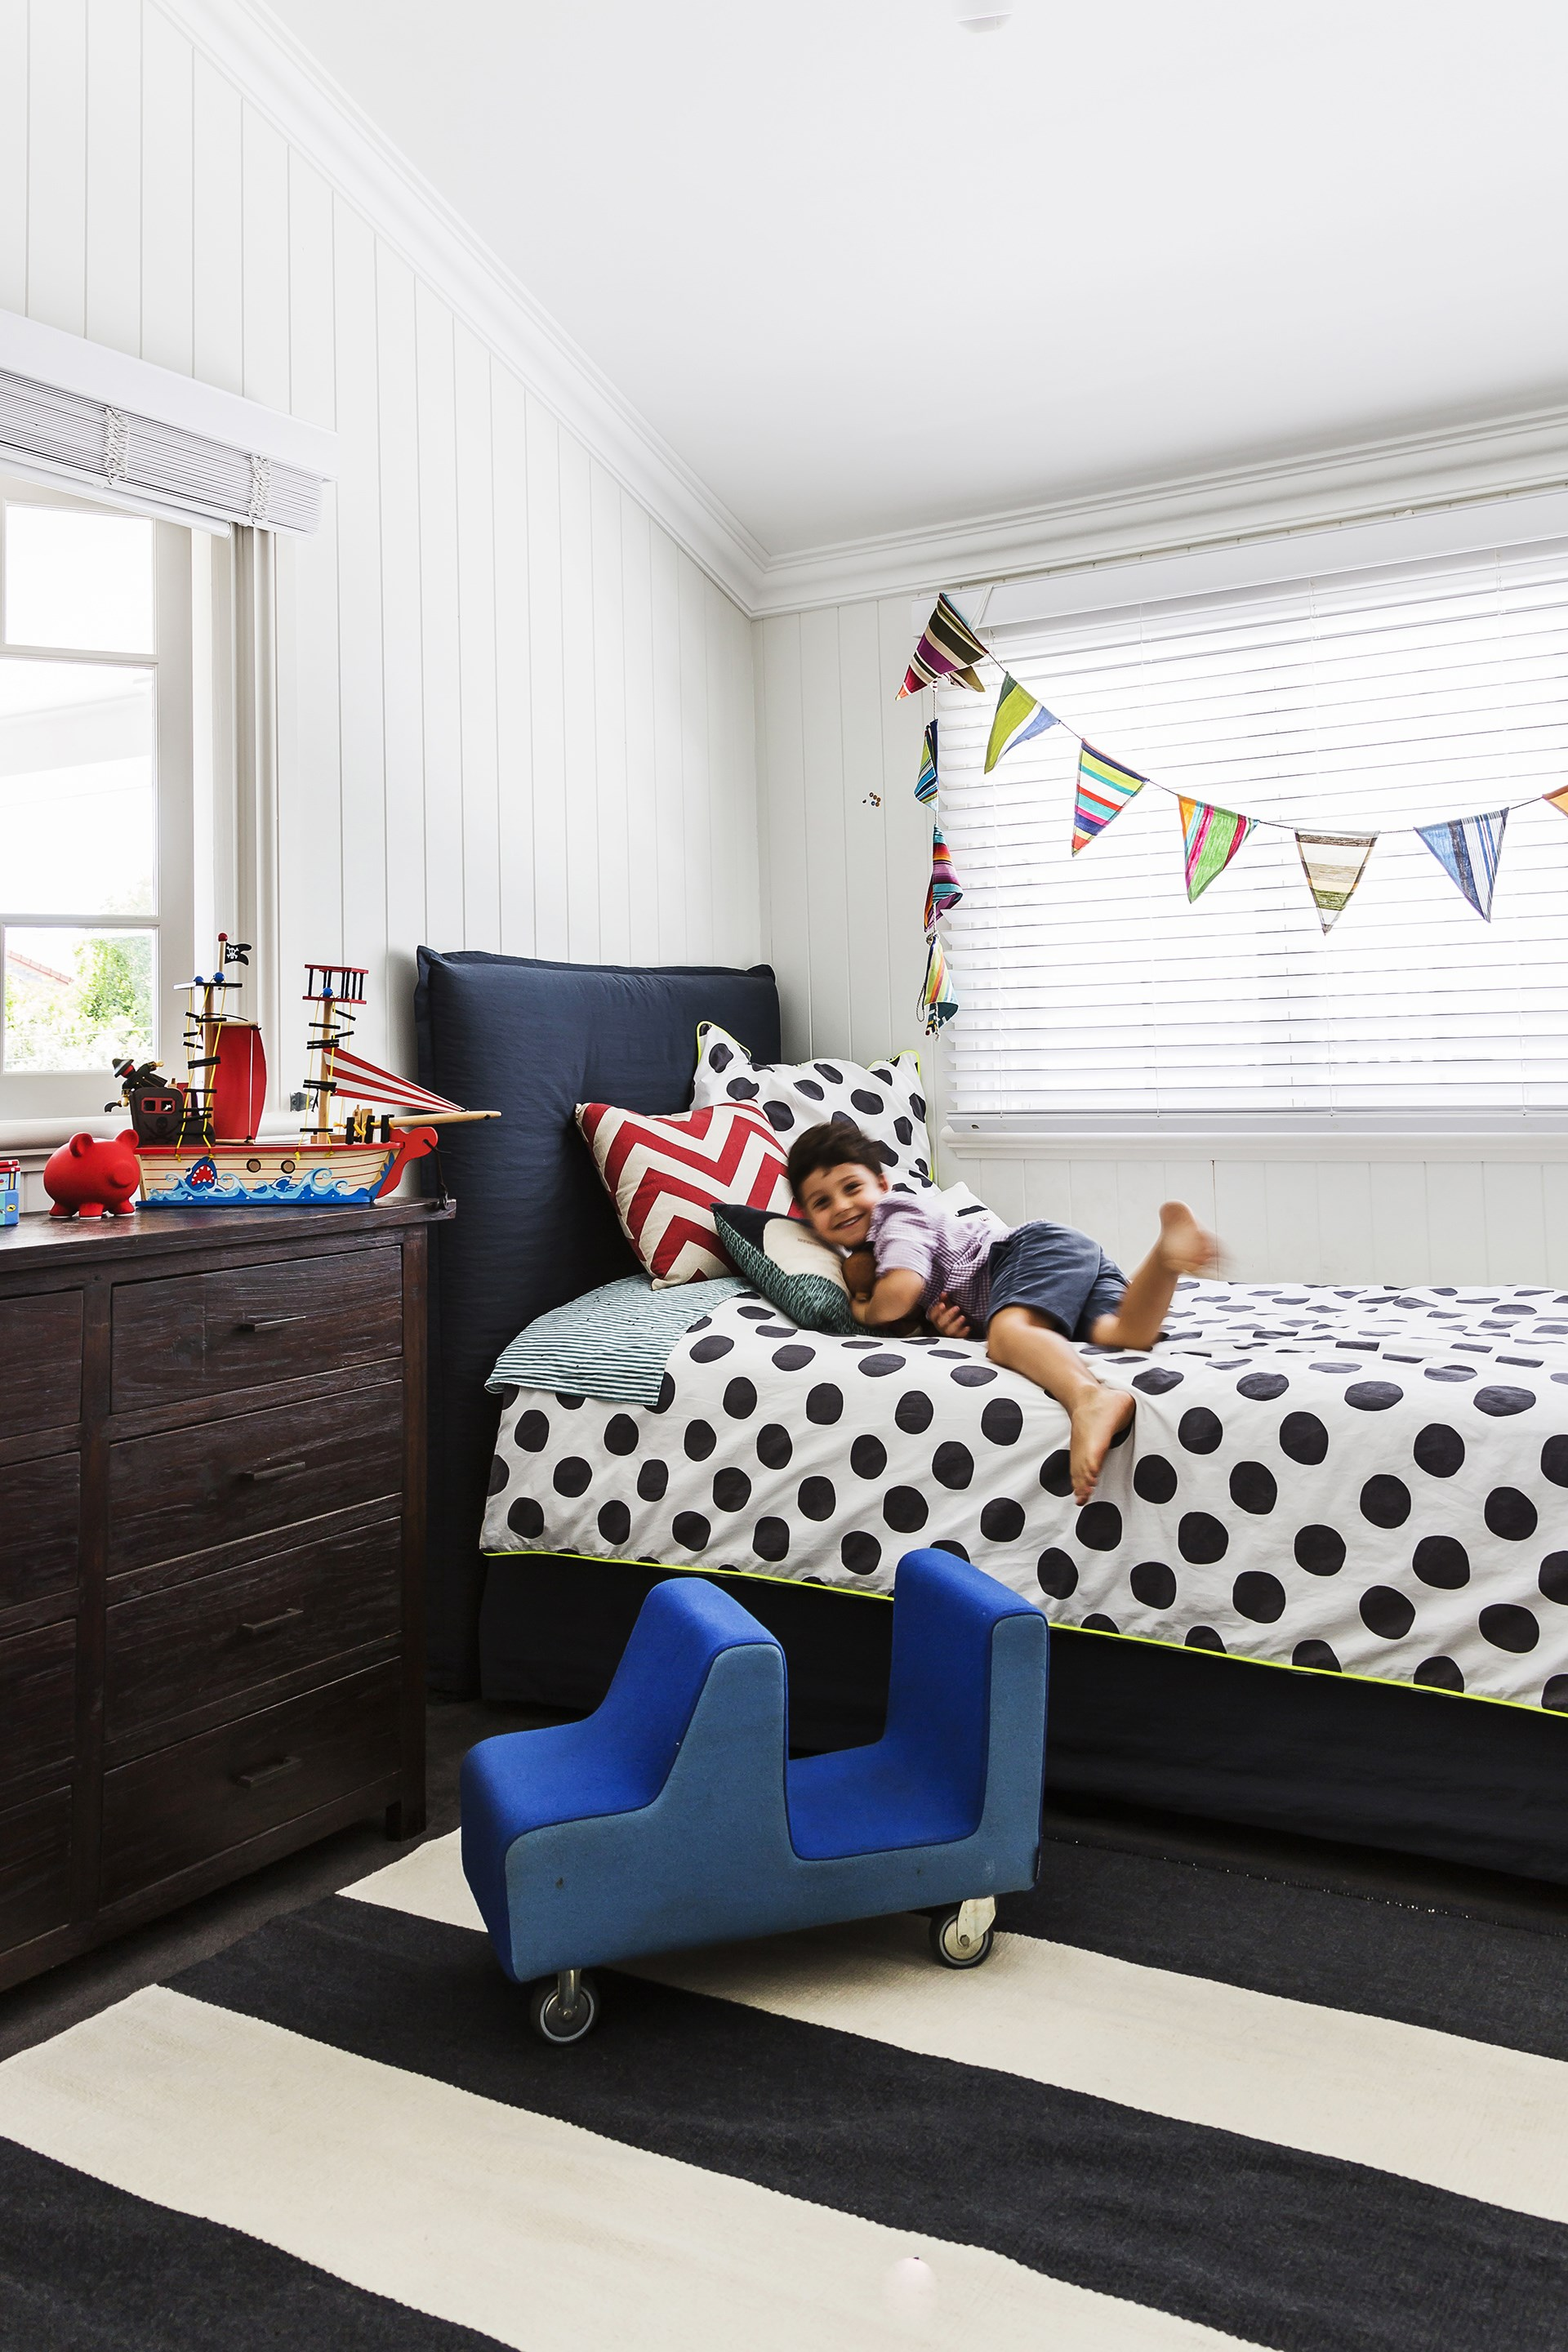 "Opting for nautical elements over a full-blown pirate theme allows this bedroom decorative flexibility as Finn's tastes and interests develop over the years. Take a tour of this [relaxed Brisbane Queenslander](http://www.homestolove.com.au/gallery-lori-and-sanjays-relaxed-brisbane-queenslander-1679/?utm_campaign=supplier/|target=""_blank""). Photo: Maree Homer / *Australian House & Garden*"